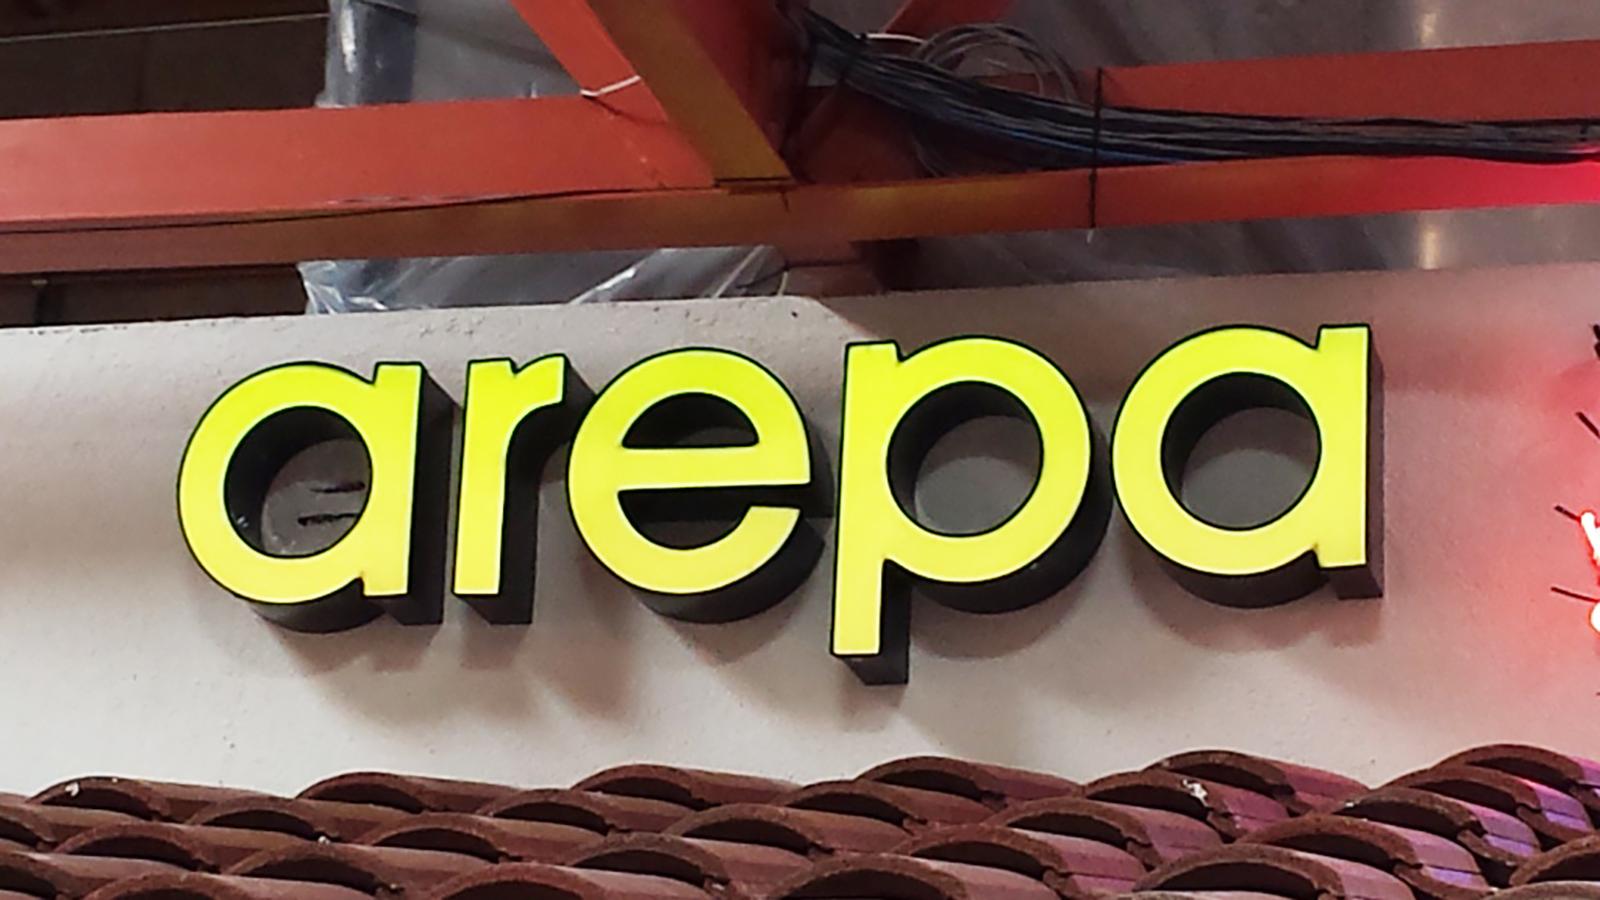 Channel letter signage for Arepa, San Jose